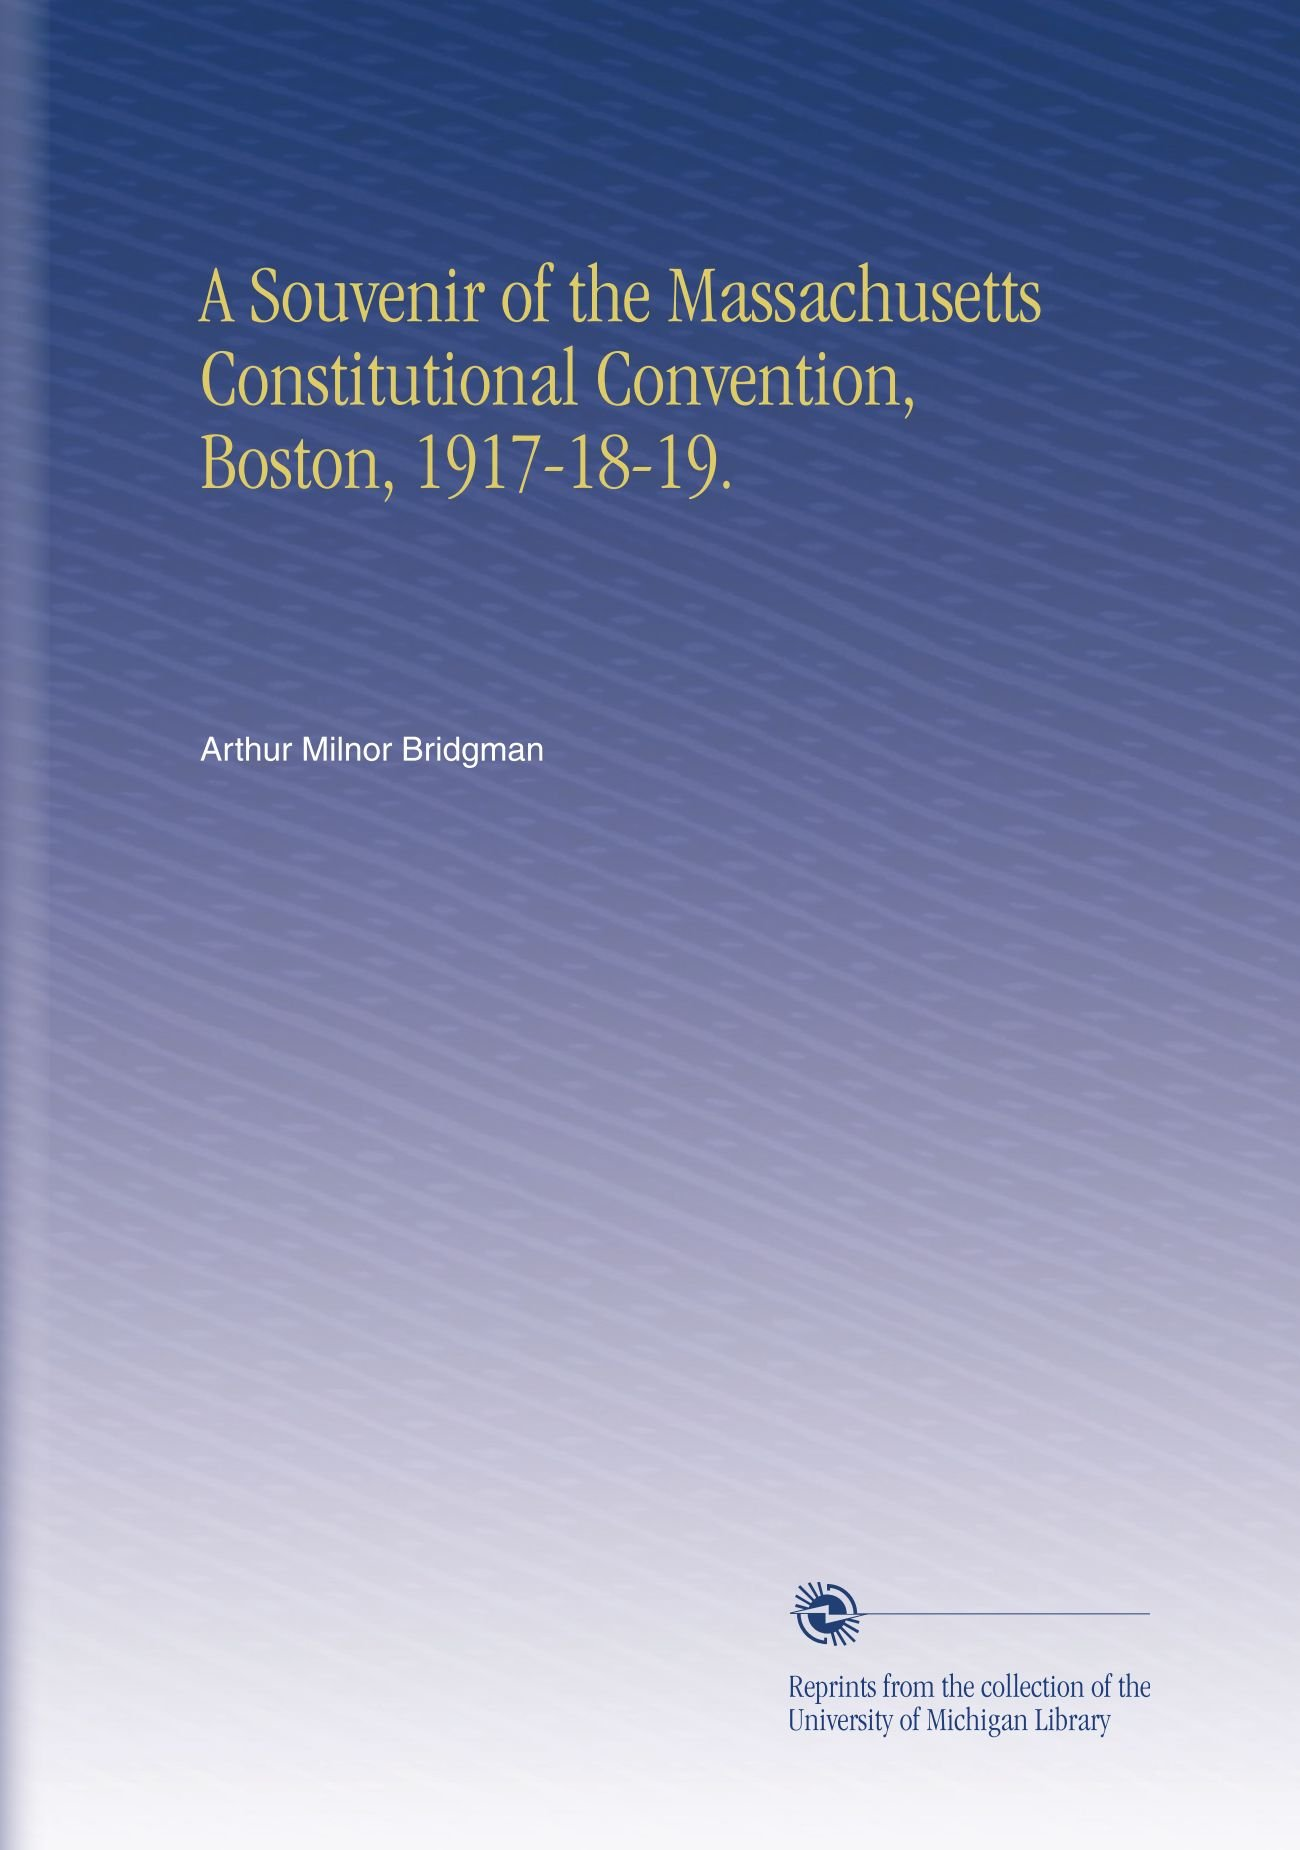 A Souvenir of the Massachusetts Constitutional Convention, Boston, 1917-18-19. PDF